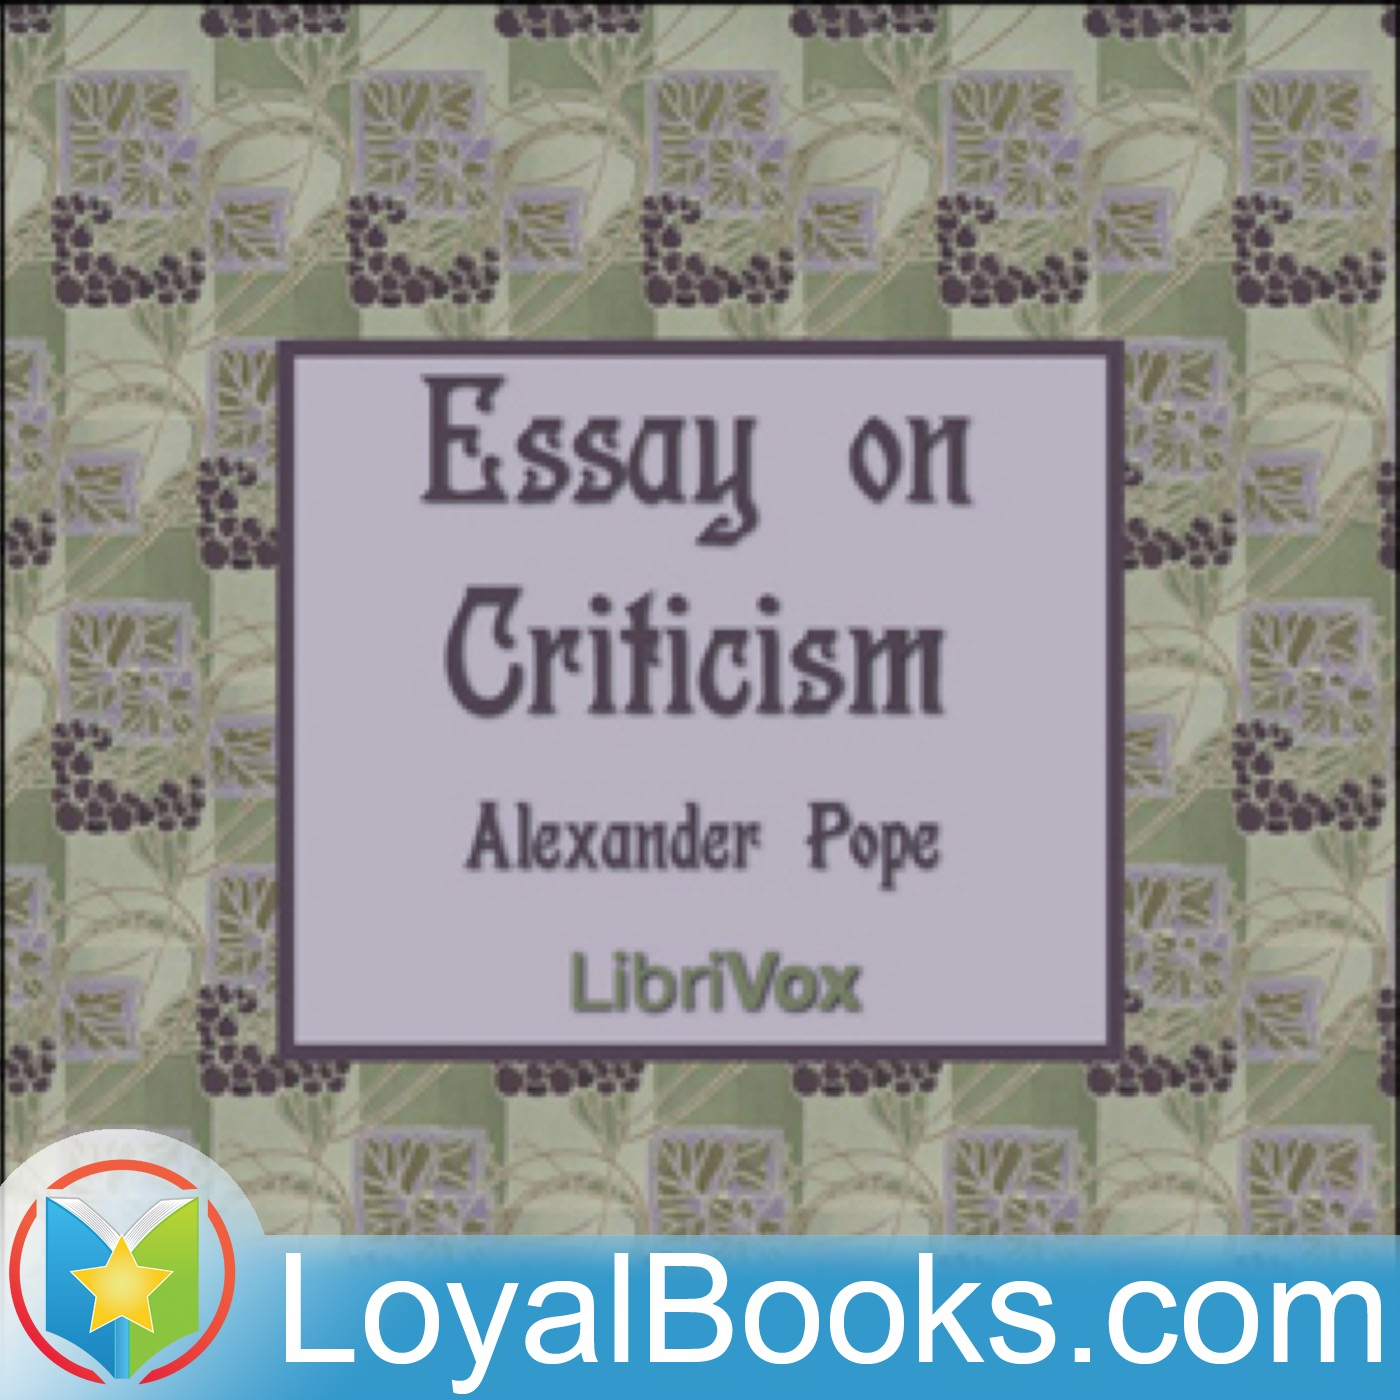 014 Essay On Criticism By Alexander Pope An Sensational Lines 233 To 415 Meaning Summary Sparknotes Full